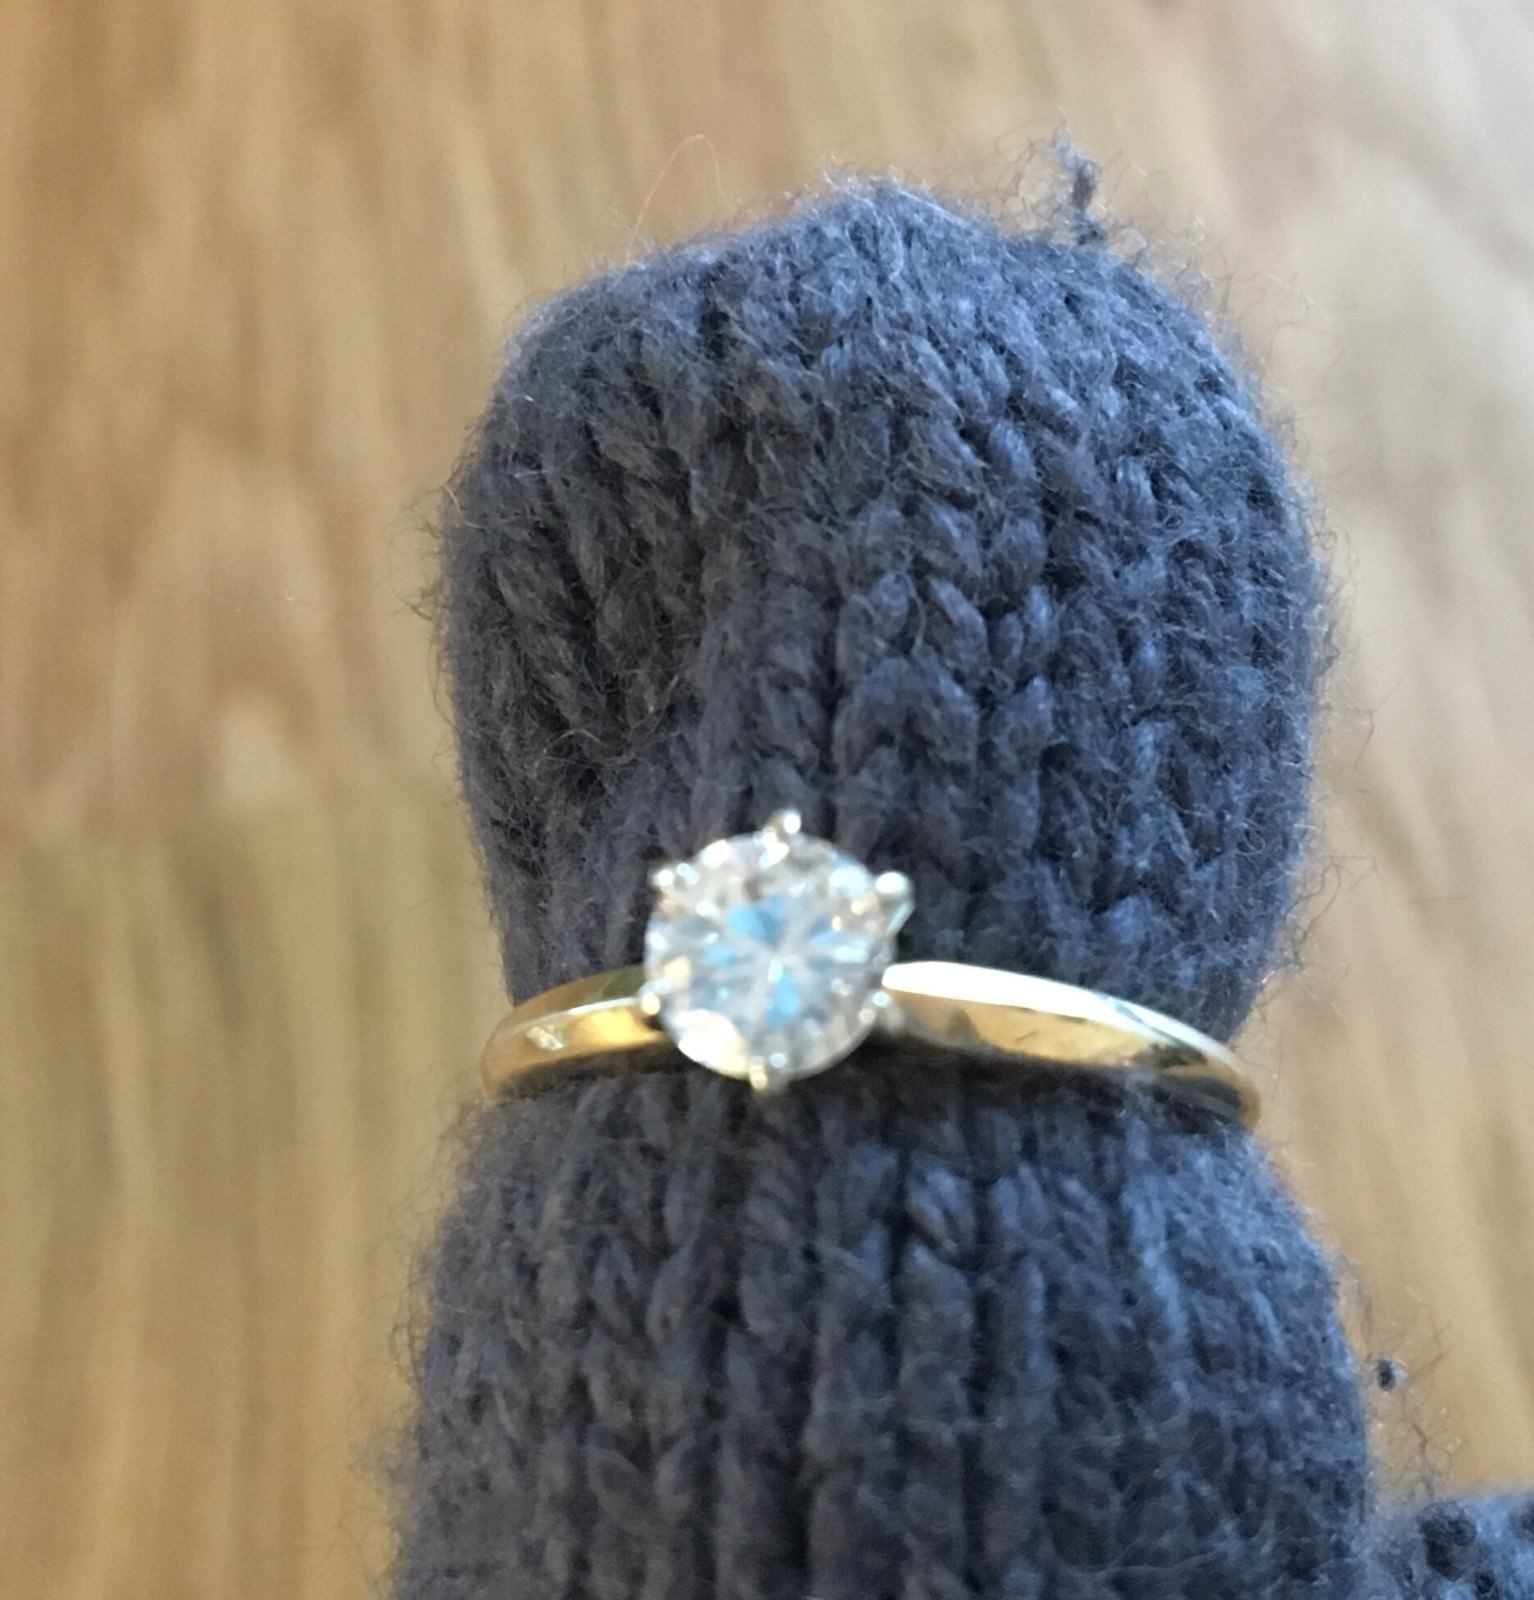 Vintage 14k Solid Yellow gold Half-Carat Diamond Solitaire Engagement Ring